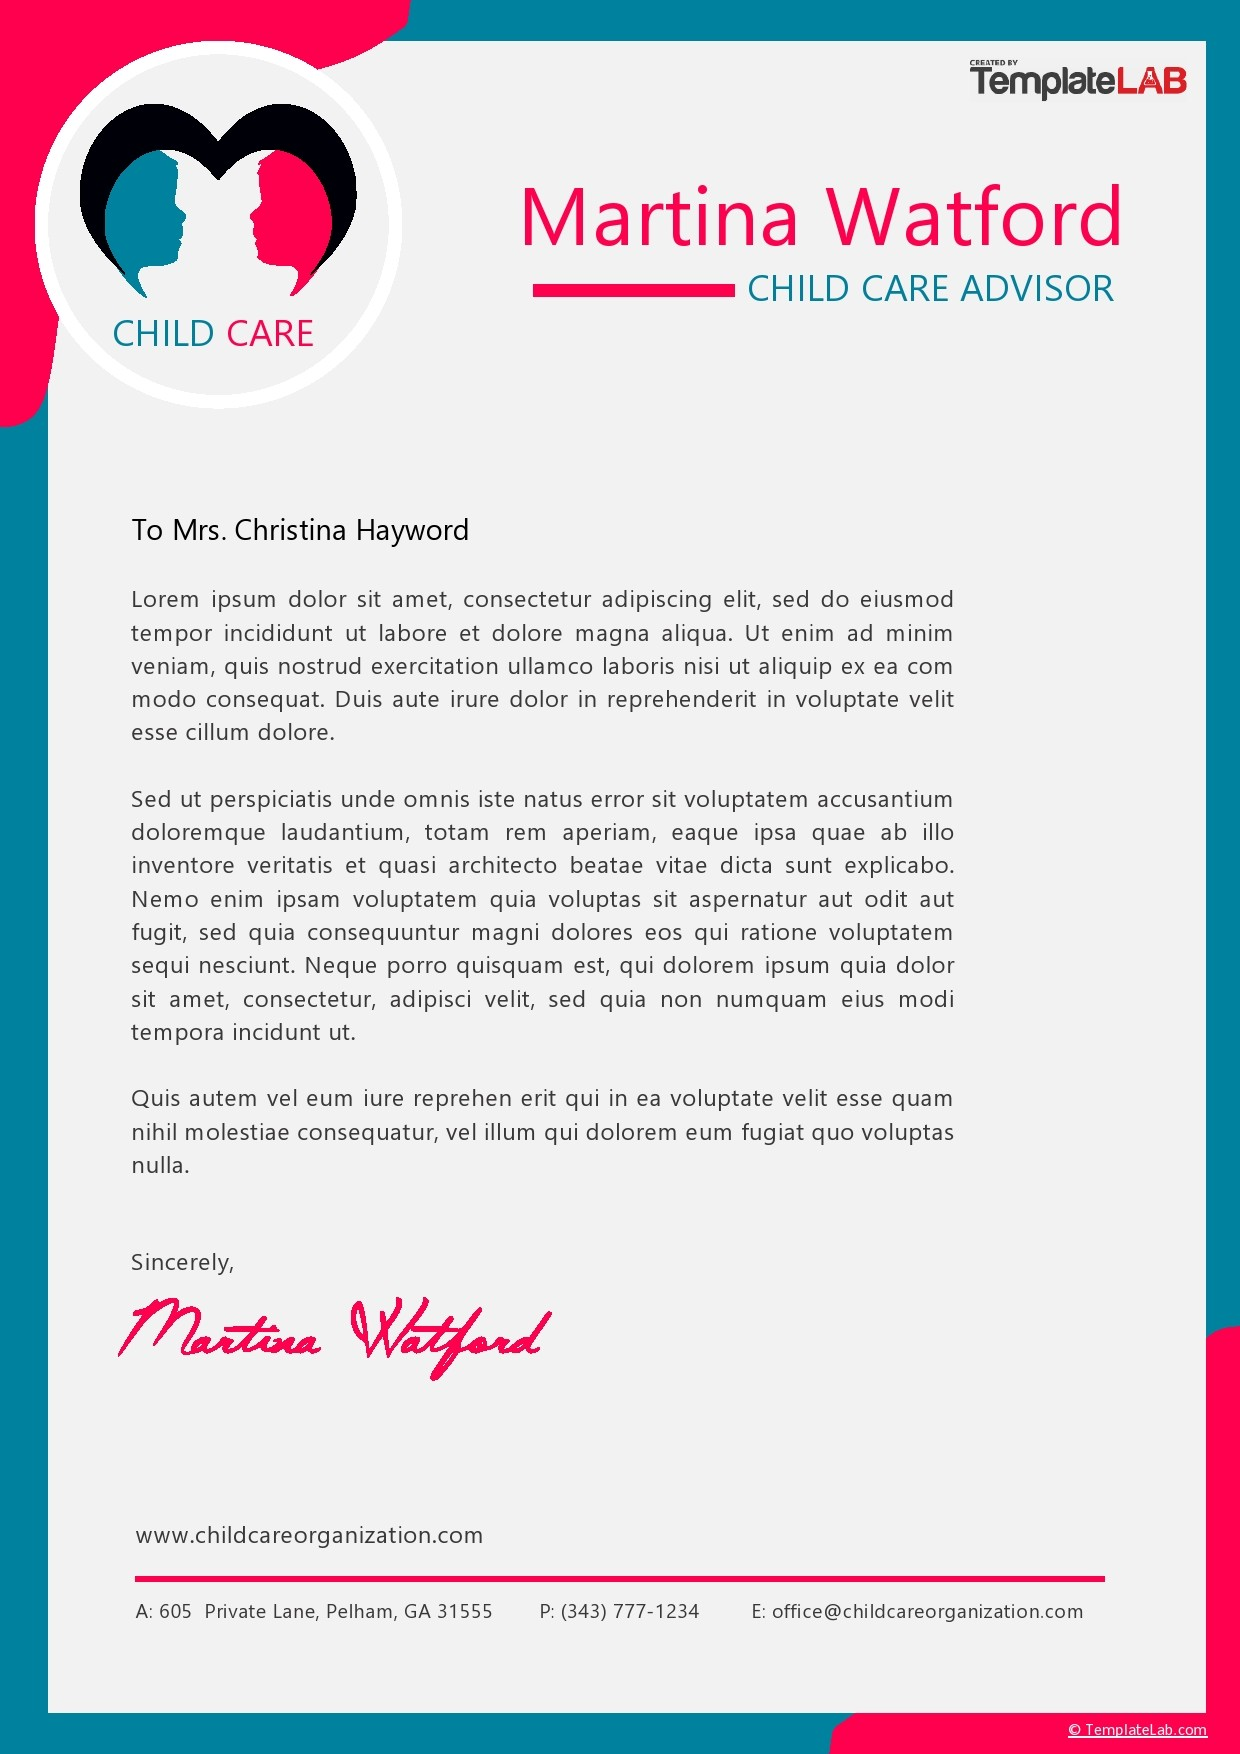 Free Child Care Letterhead Template - TemplateLab.com